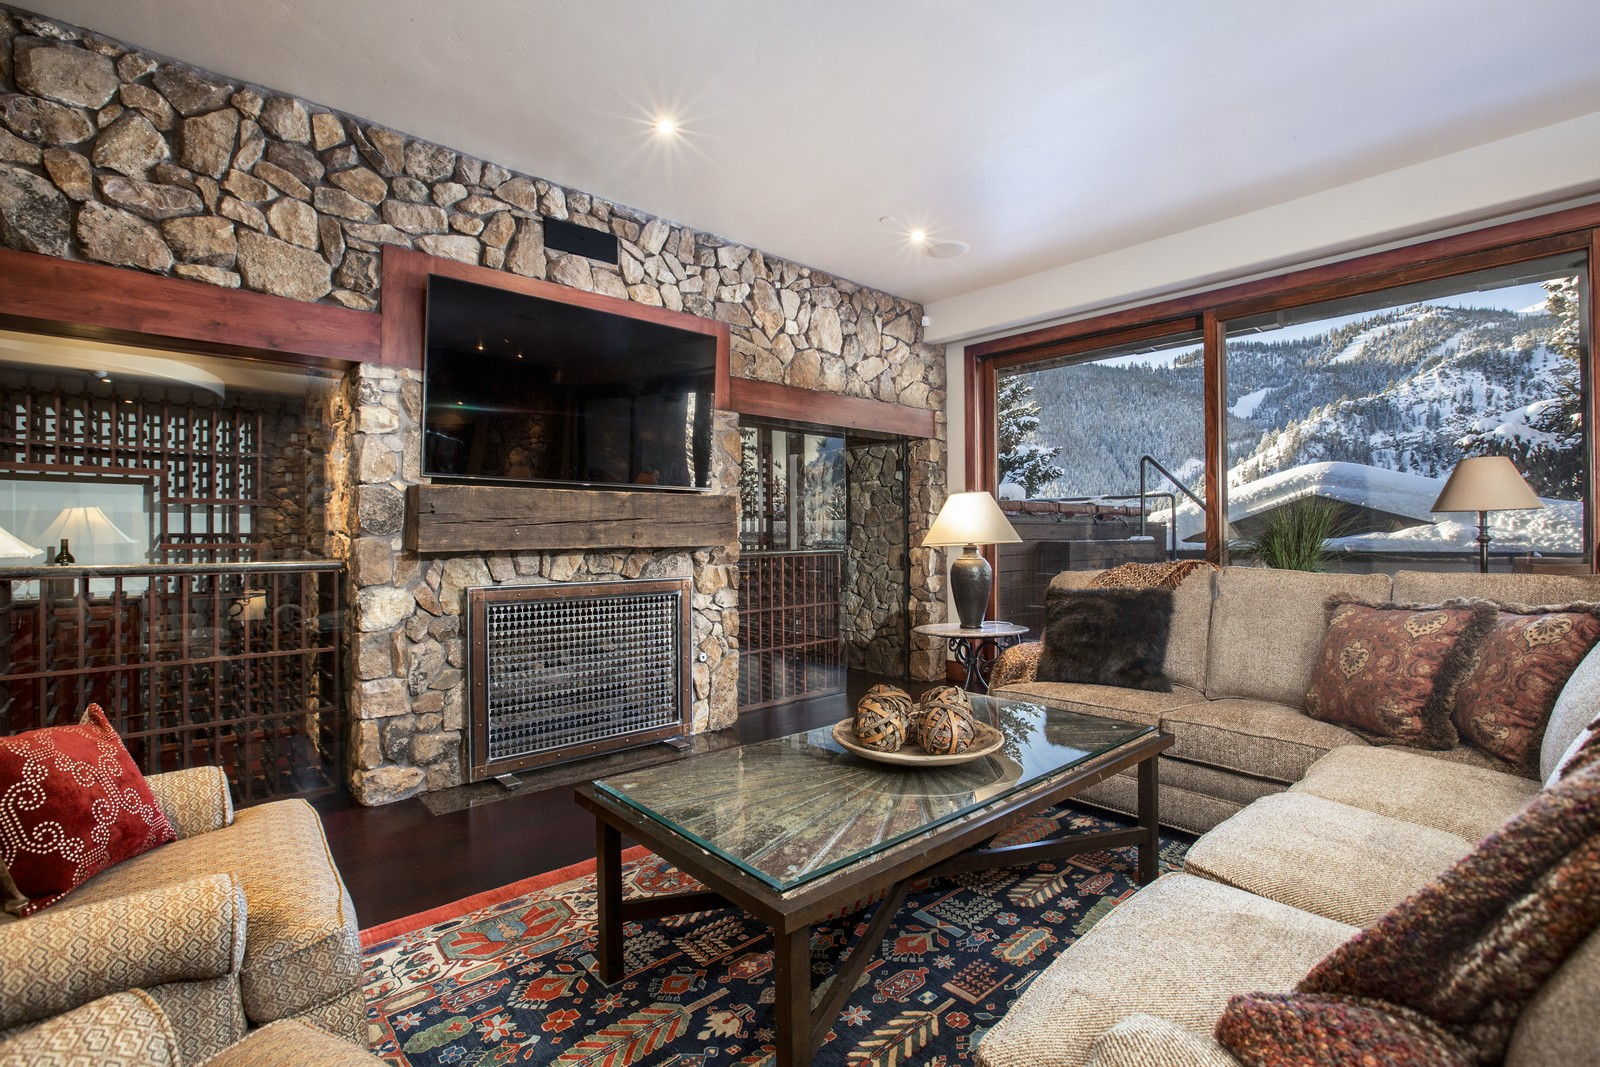 Additional photo for property listing at Elevating Expectations 120 N. 2nd Ave 301 Ketchum, Idaho 83340 Estados Unidos